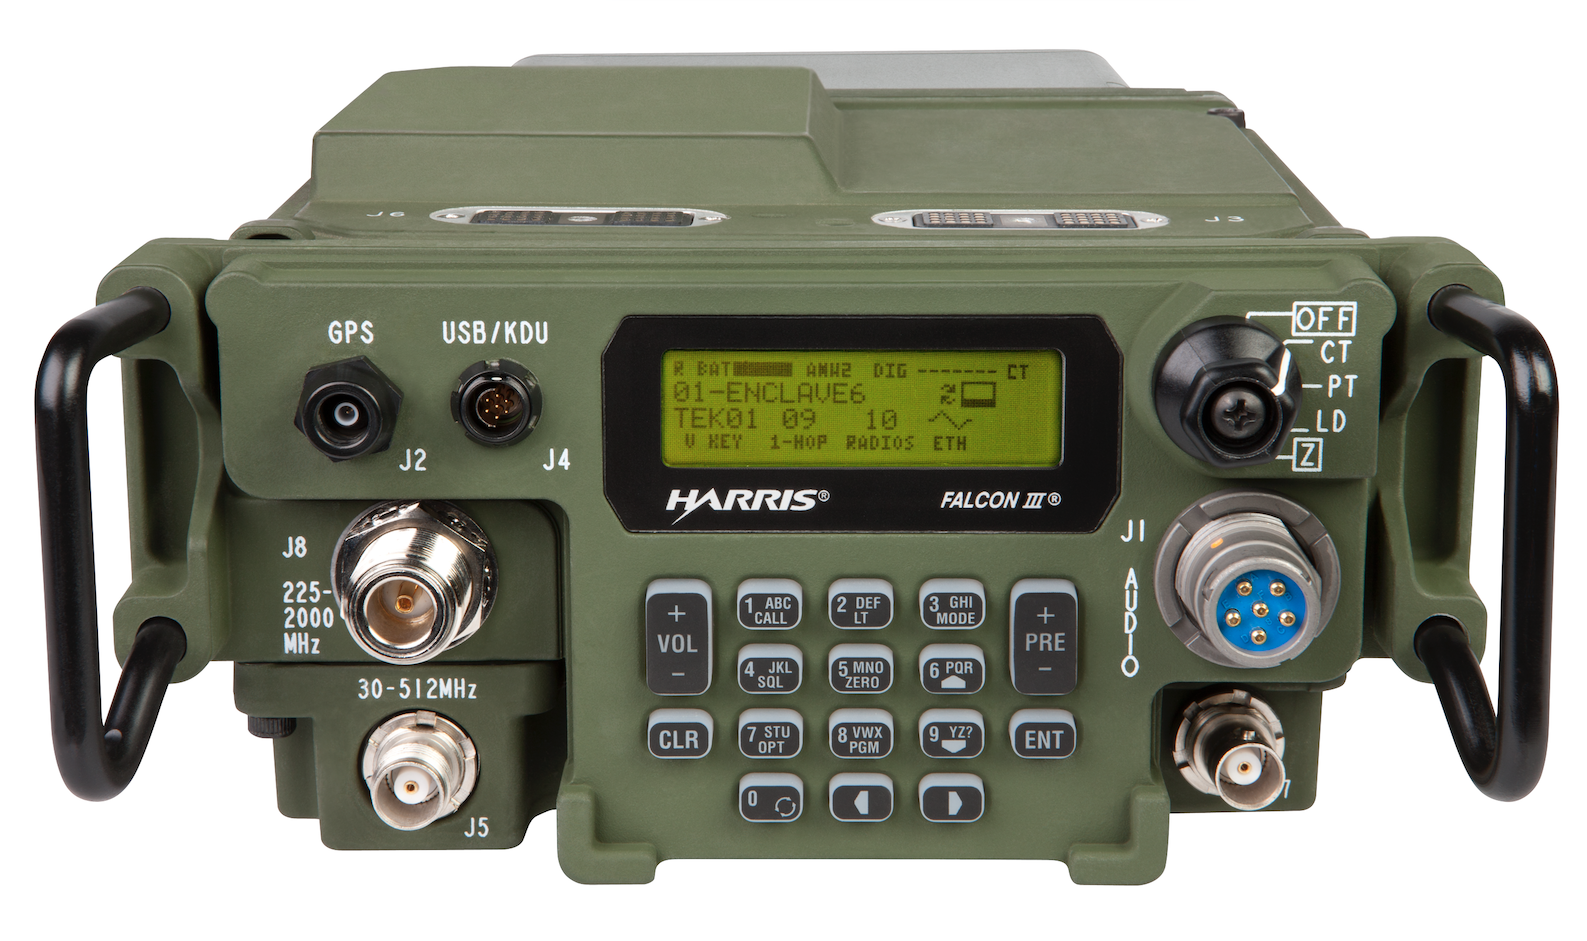 Harris' AN/PRC-117G radio